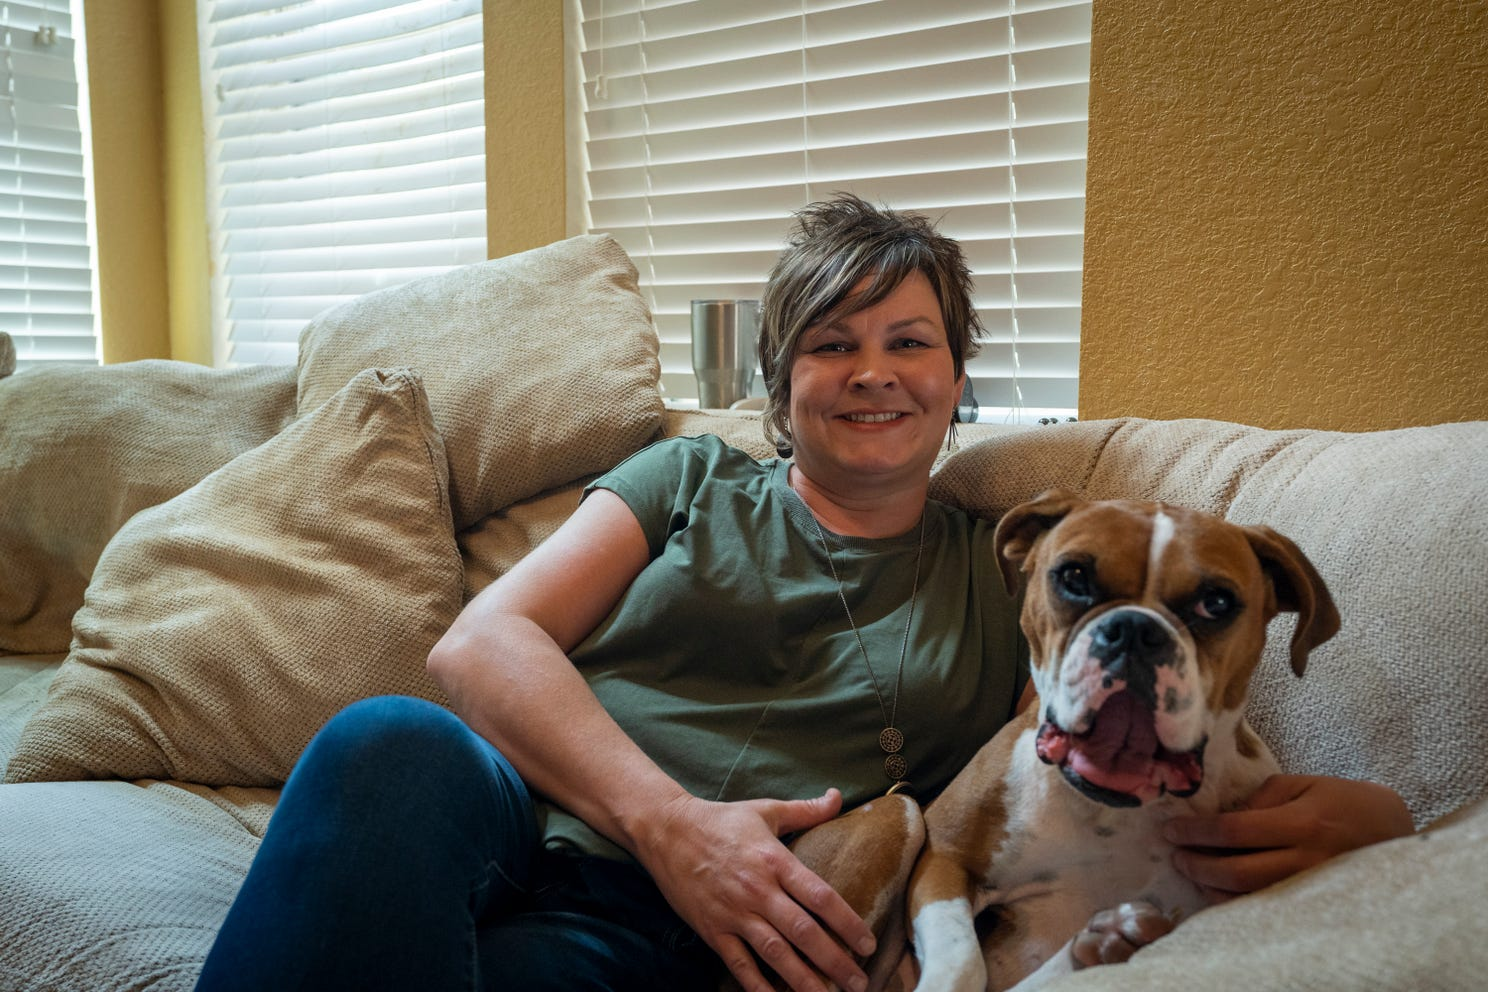 Kara Shepherd, a labor and delivery nurse at Houston Methodist Willowbrook Hospital, sits with a dog in the home of Jennifer Bridges. Shepherd says of the hospital's recent COVID-19 vaccine mandate for employees,